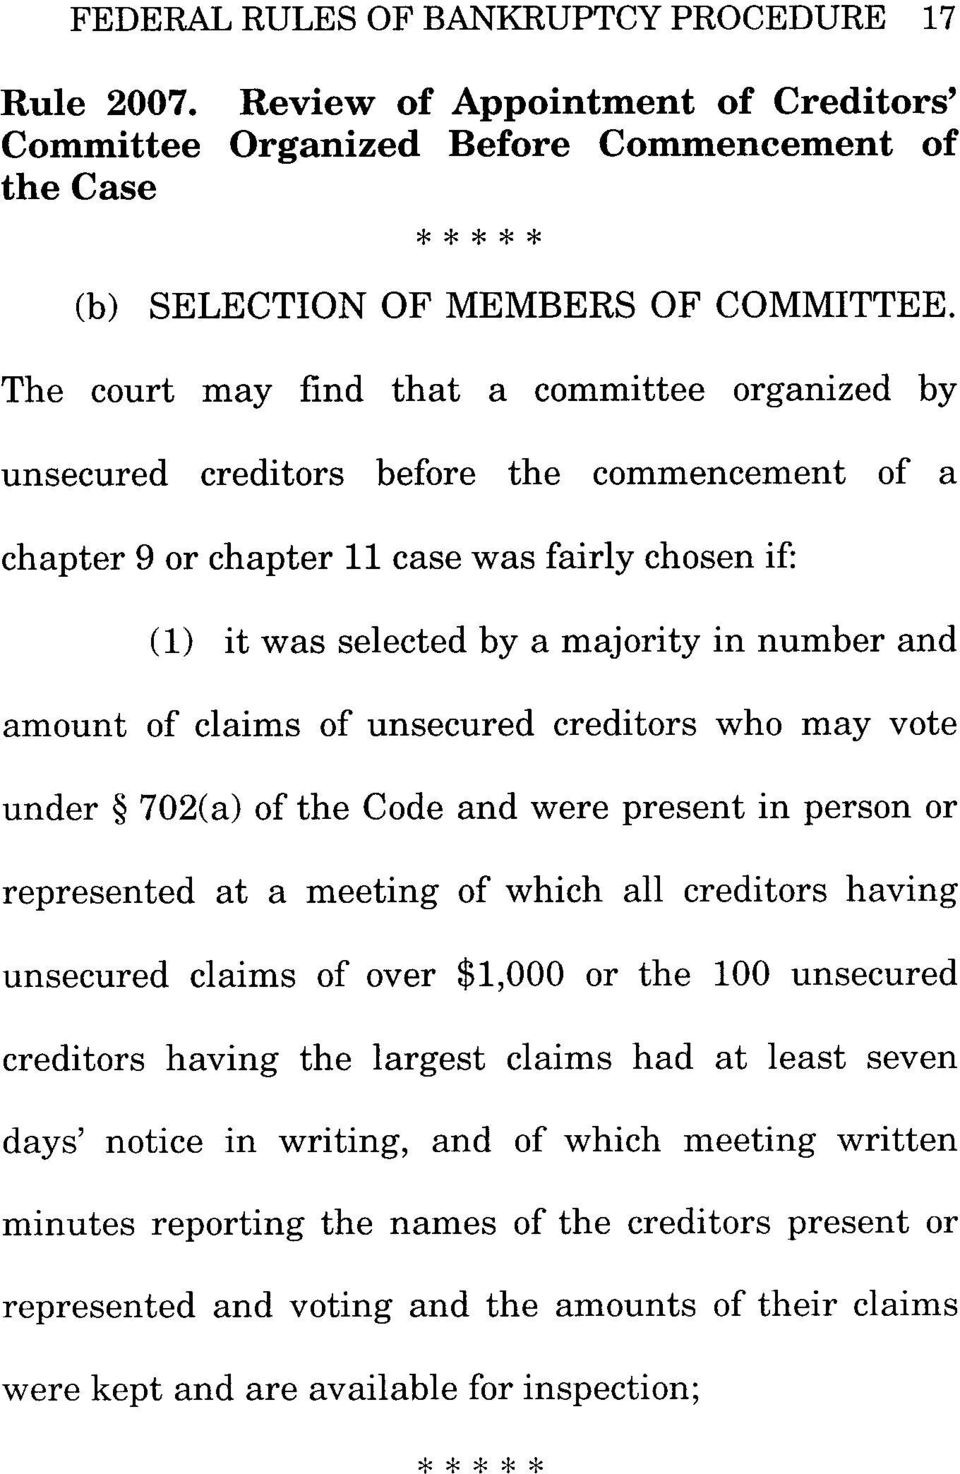 amount of claims of unsecured creditors who may vote under 702(a) of the Code and were present in person or represented at a meeting of which all creditors having unsecured claims of over $1,000 or